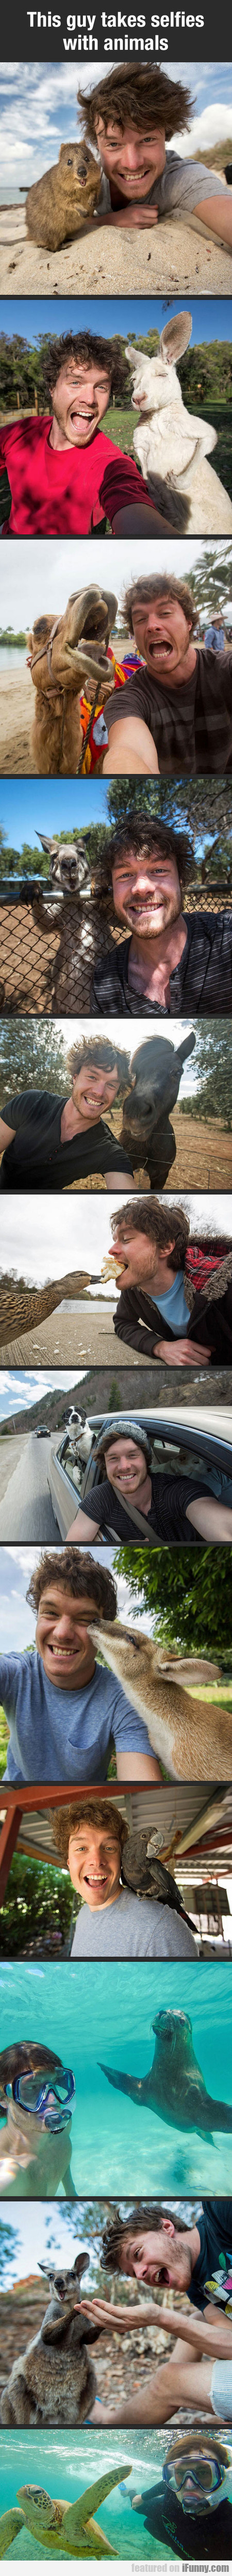 This Guy Takes Selfies With Animals